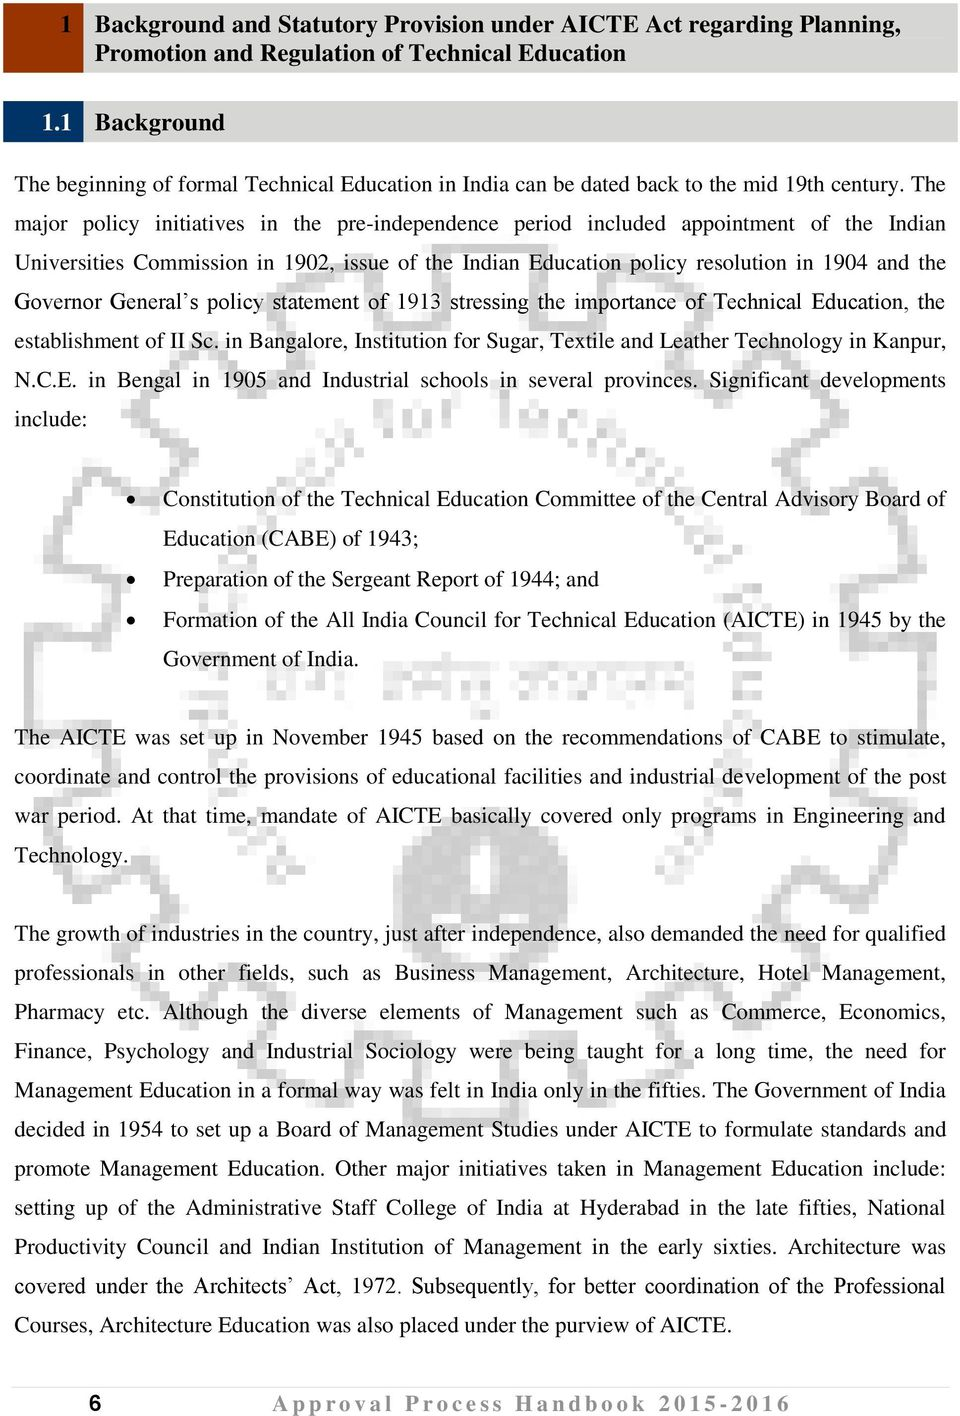 The major policy initiatives in the pre-independence period included appointment of the Indian Universities Commission in 1902, issue of the Indian Education policy resolution in 1904 and the